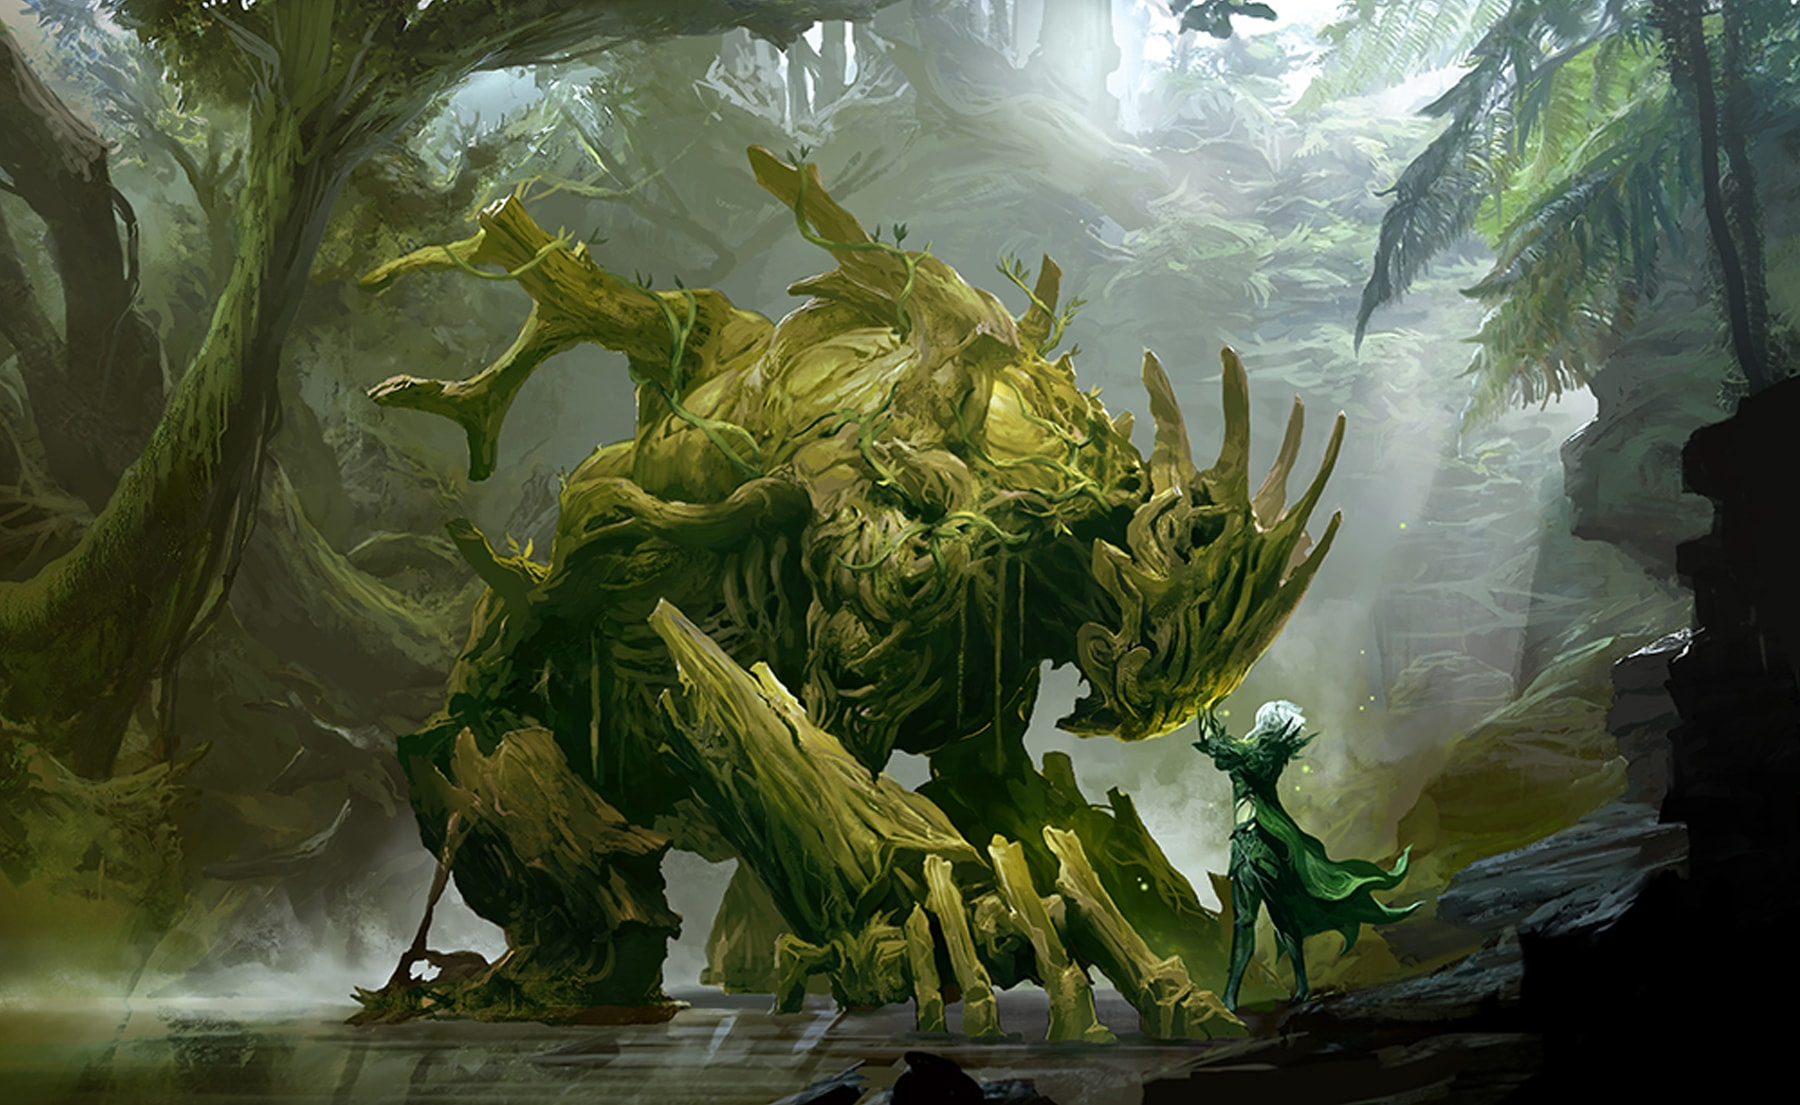 Guild Wars 2 character Caithe confronts a tree-like creature in the middle of the forest